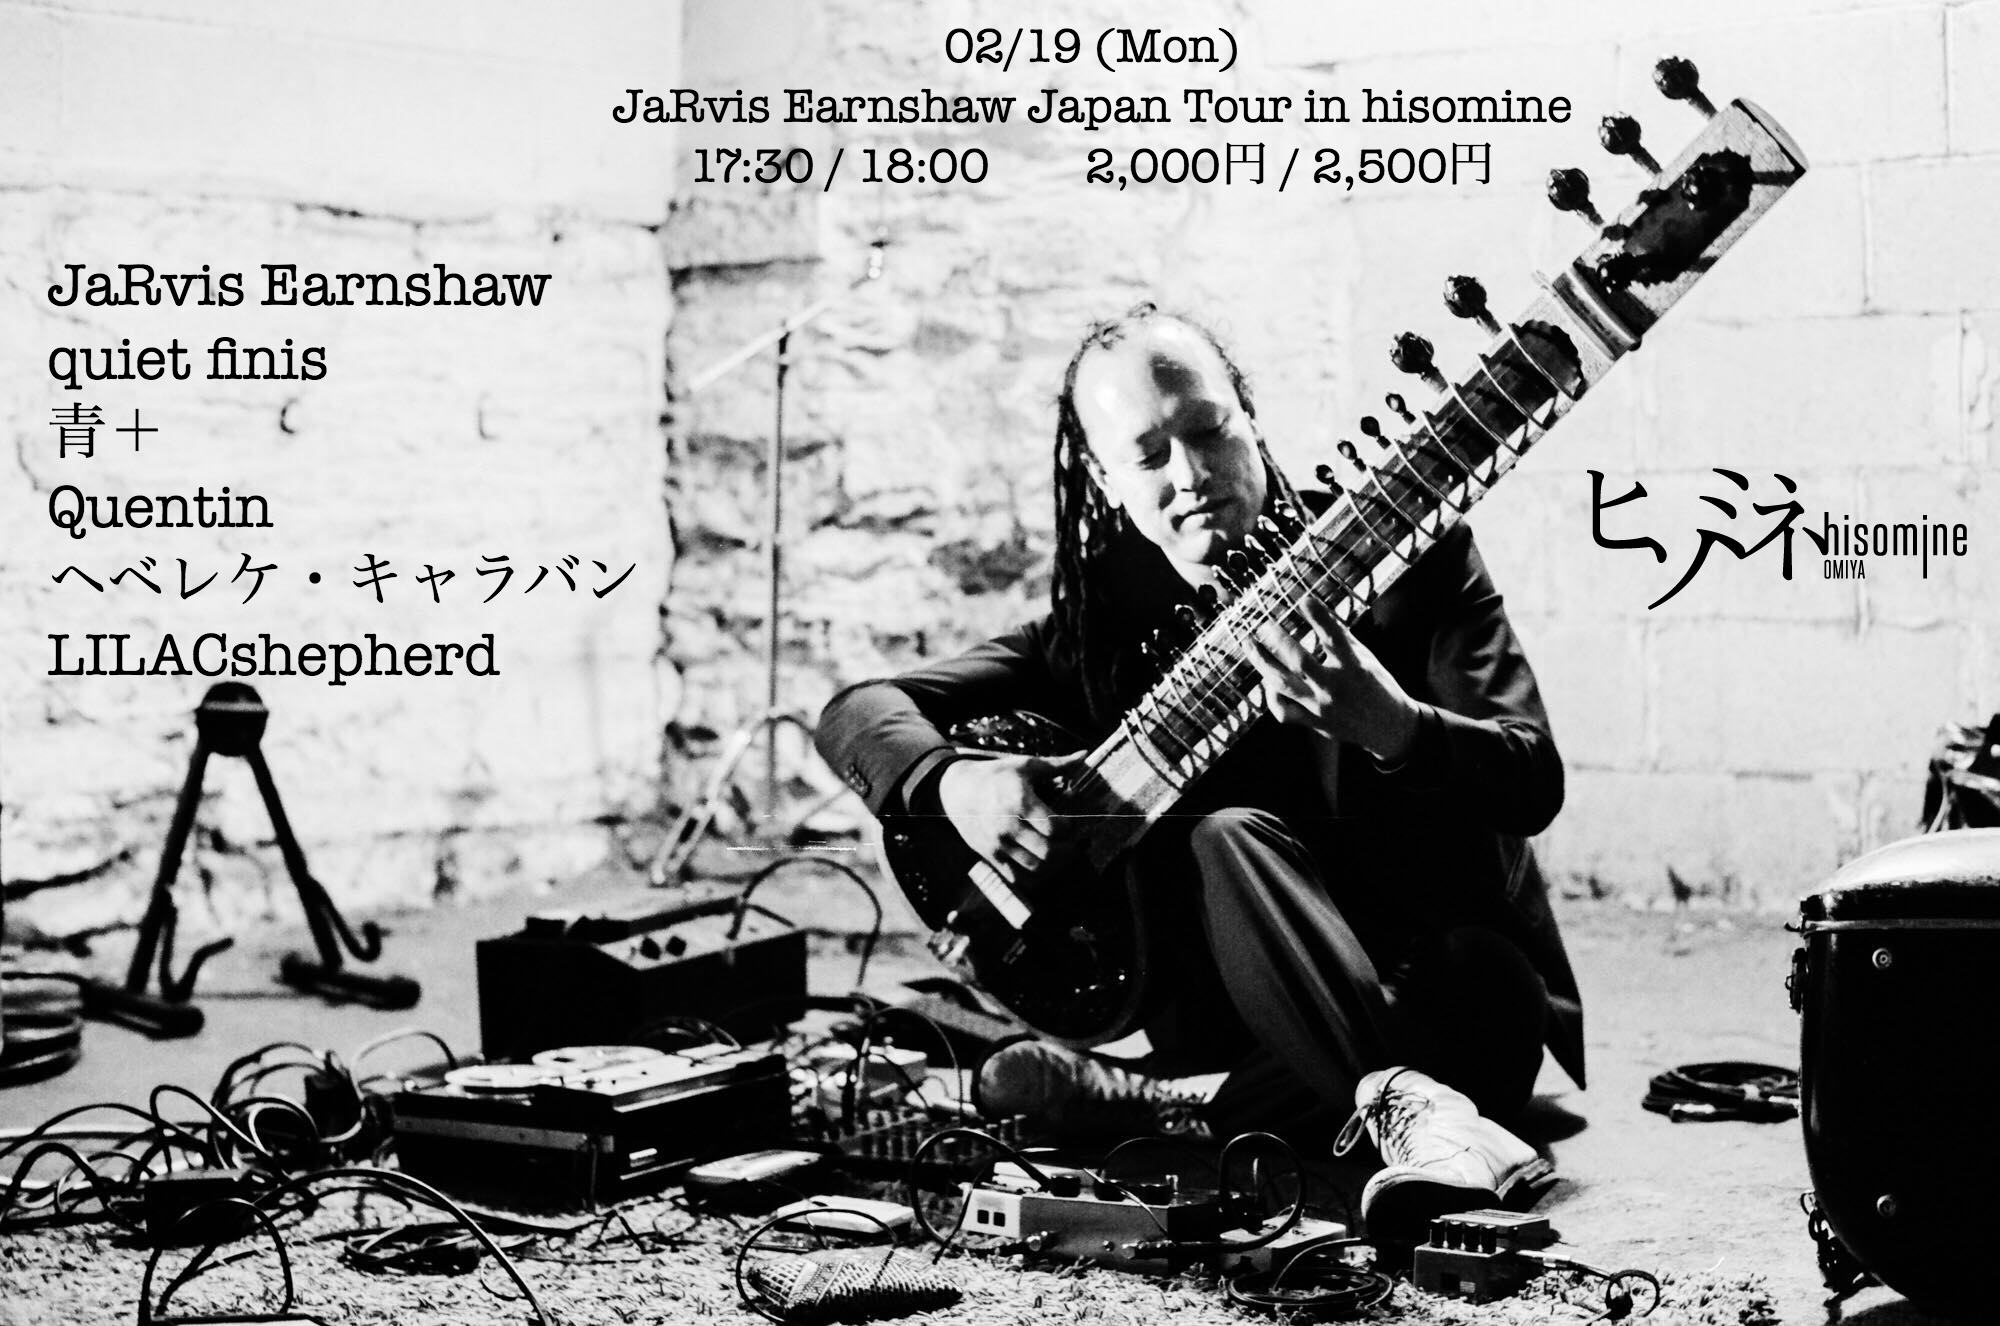 JaRvis Earnshaw Japan Tour in hisomine